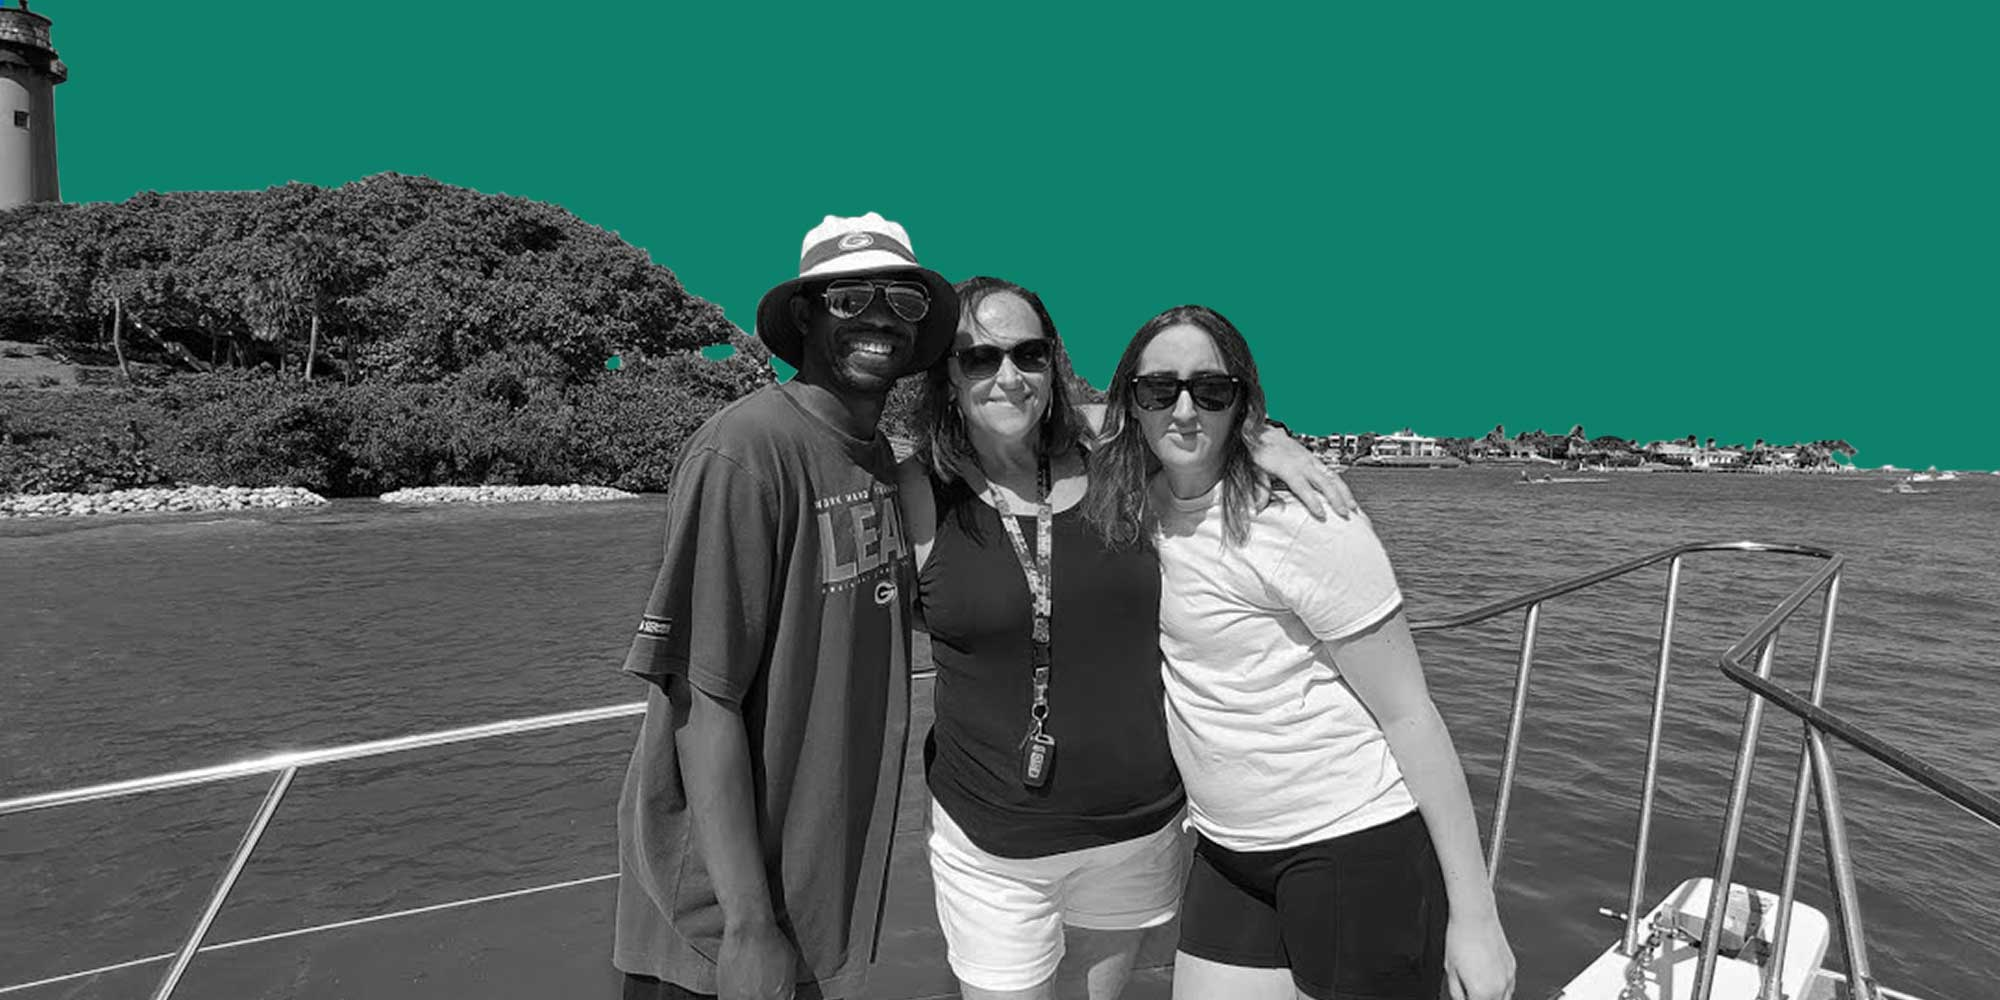 A family of one African American man and two White women on a boat